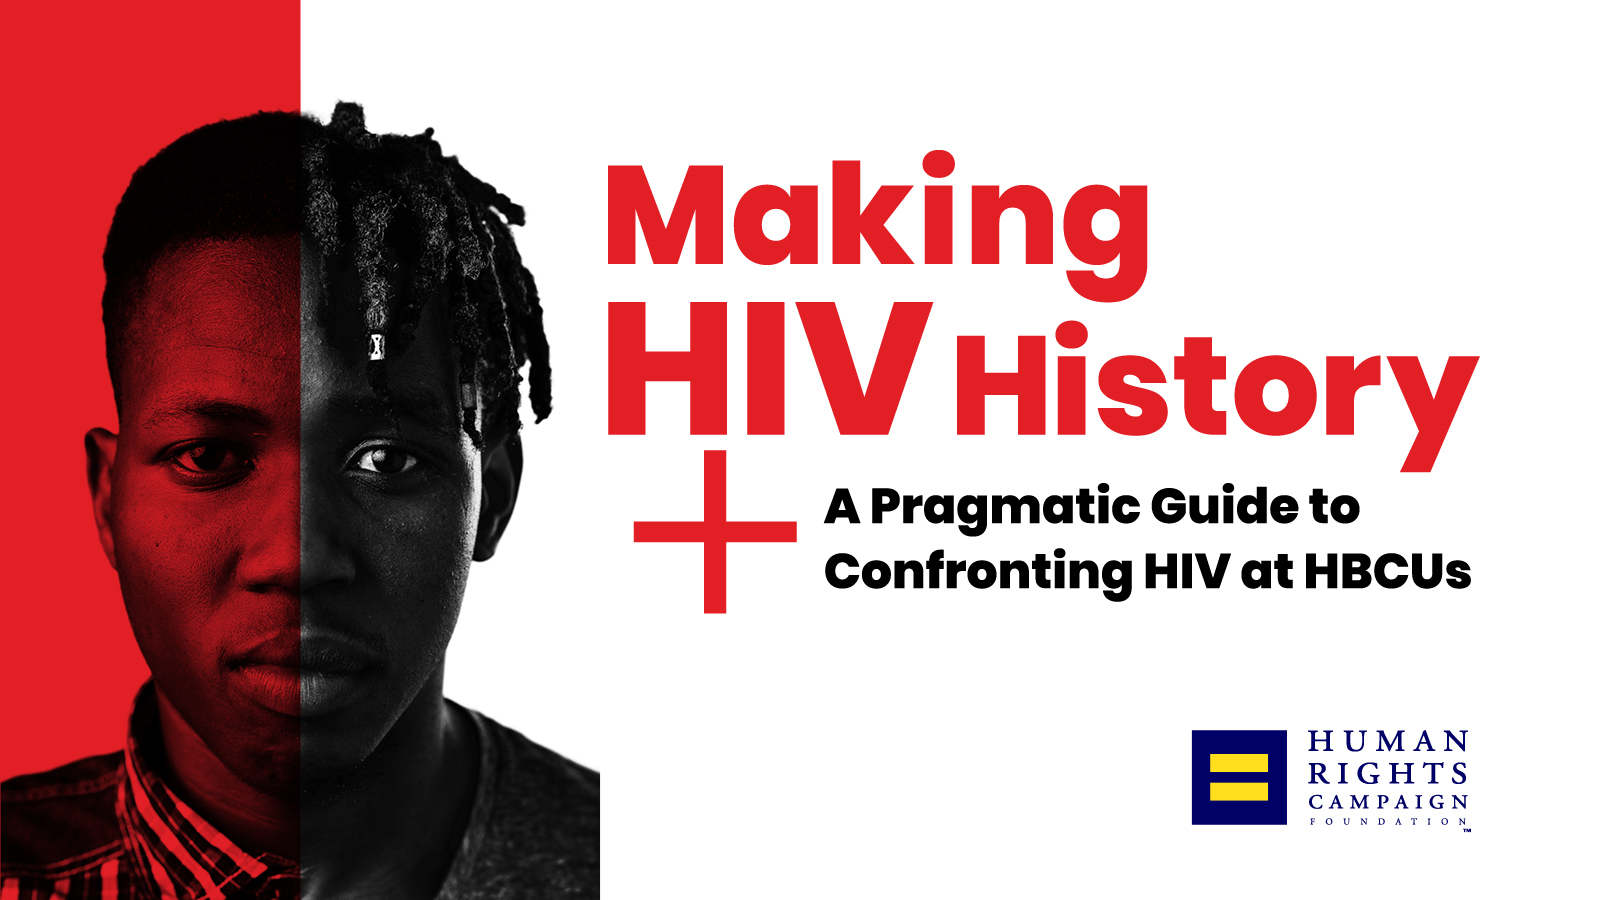 New HRC Guide for HIV Prevention Treatment and Care for HBCUs 1600x900